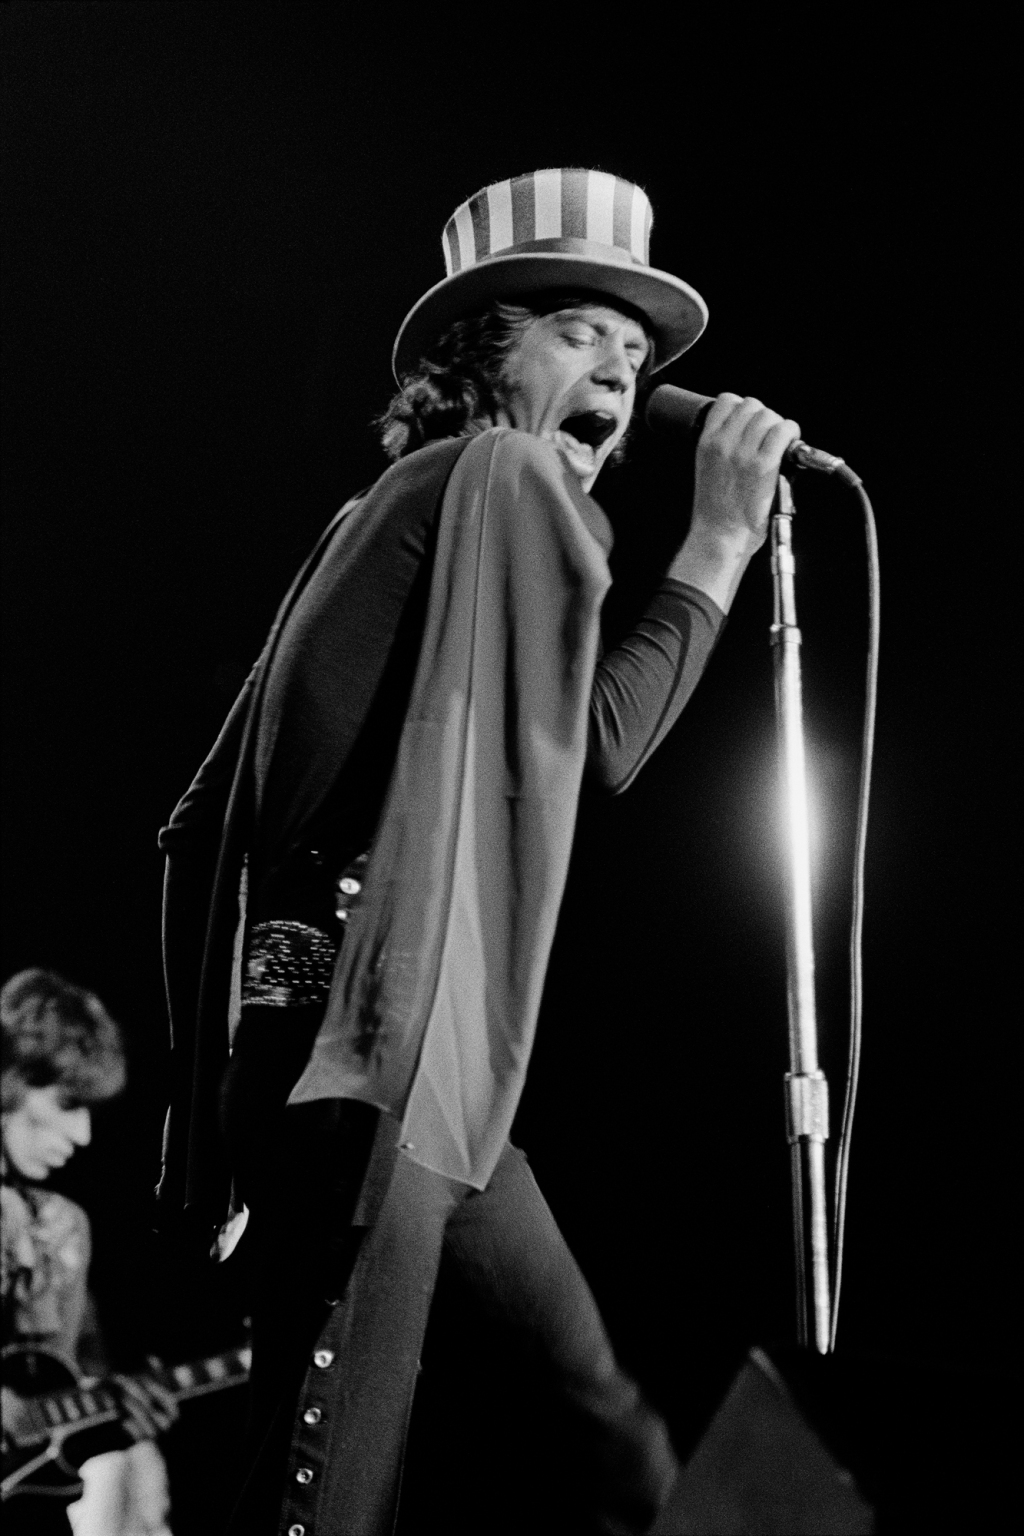 """The Rolling Stones in Oakland in 1969, right before the Altamont festival. """"That was the first time I shot the Rolling Stones,"""" says Wolman. """"I always thought [this photo] subliminally showed the relationship between Mick and Keith,"""" he says. """"Keith is in the background and Mick is dominant."""""""